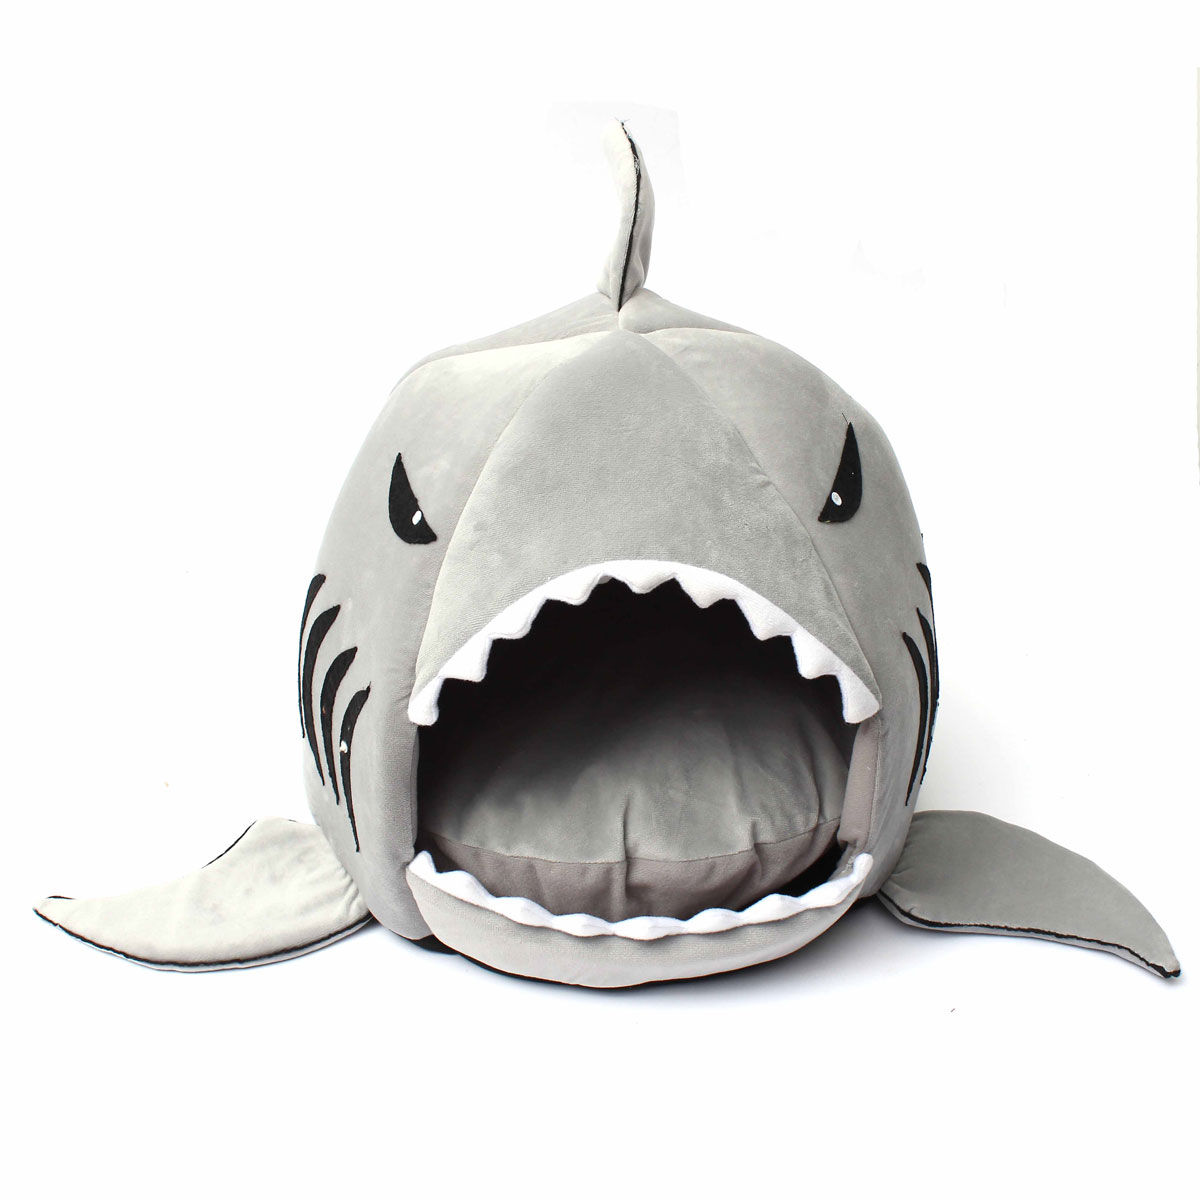 lit requin maison coussin corbeille cache cave couchage mat chat chien animal sl ebay. Black Bedroom Furniture Sets. Home Design Ideas